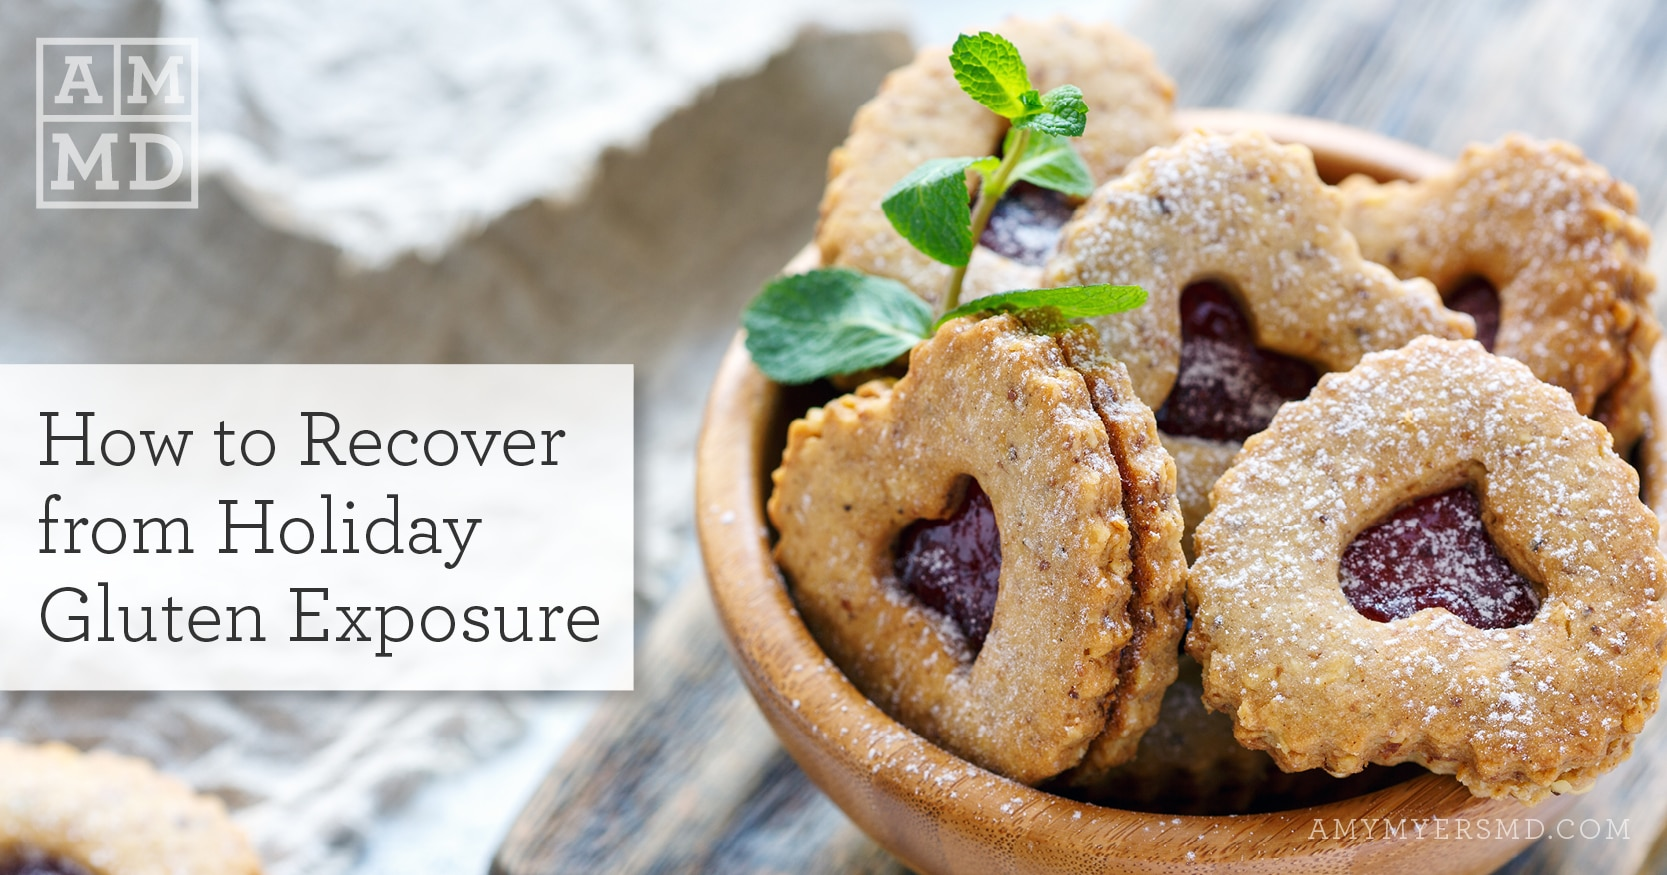 How to Recover from Holiday Gluten Exposure - Cookies - Featured Image - Amy Myers MD